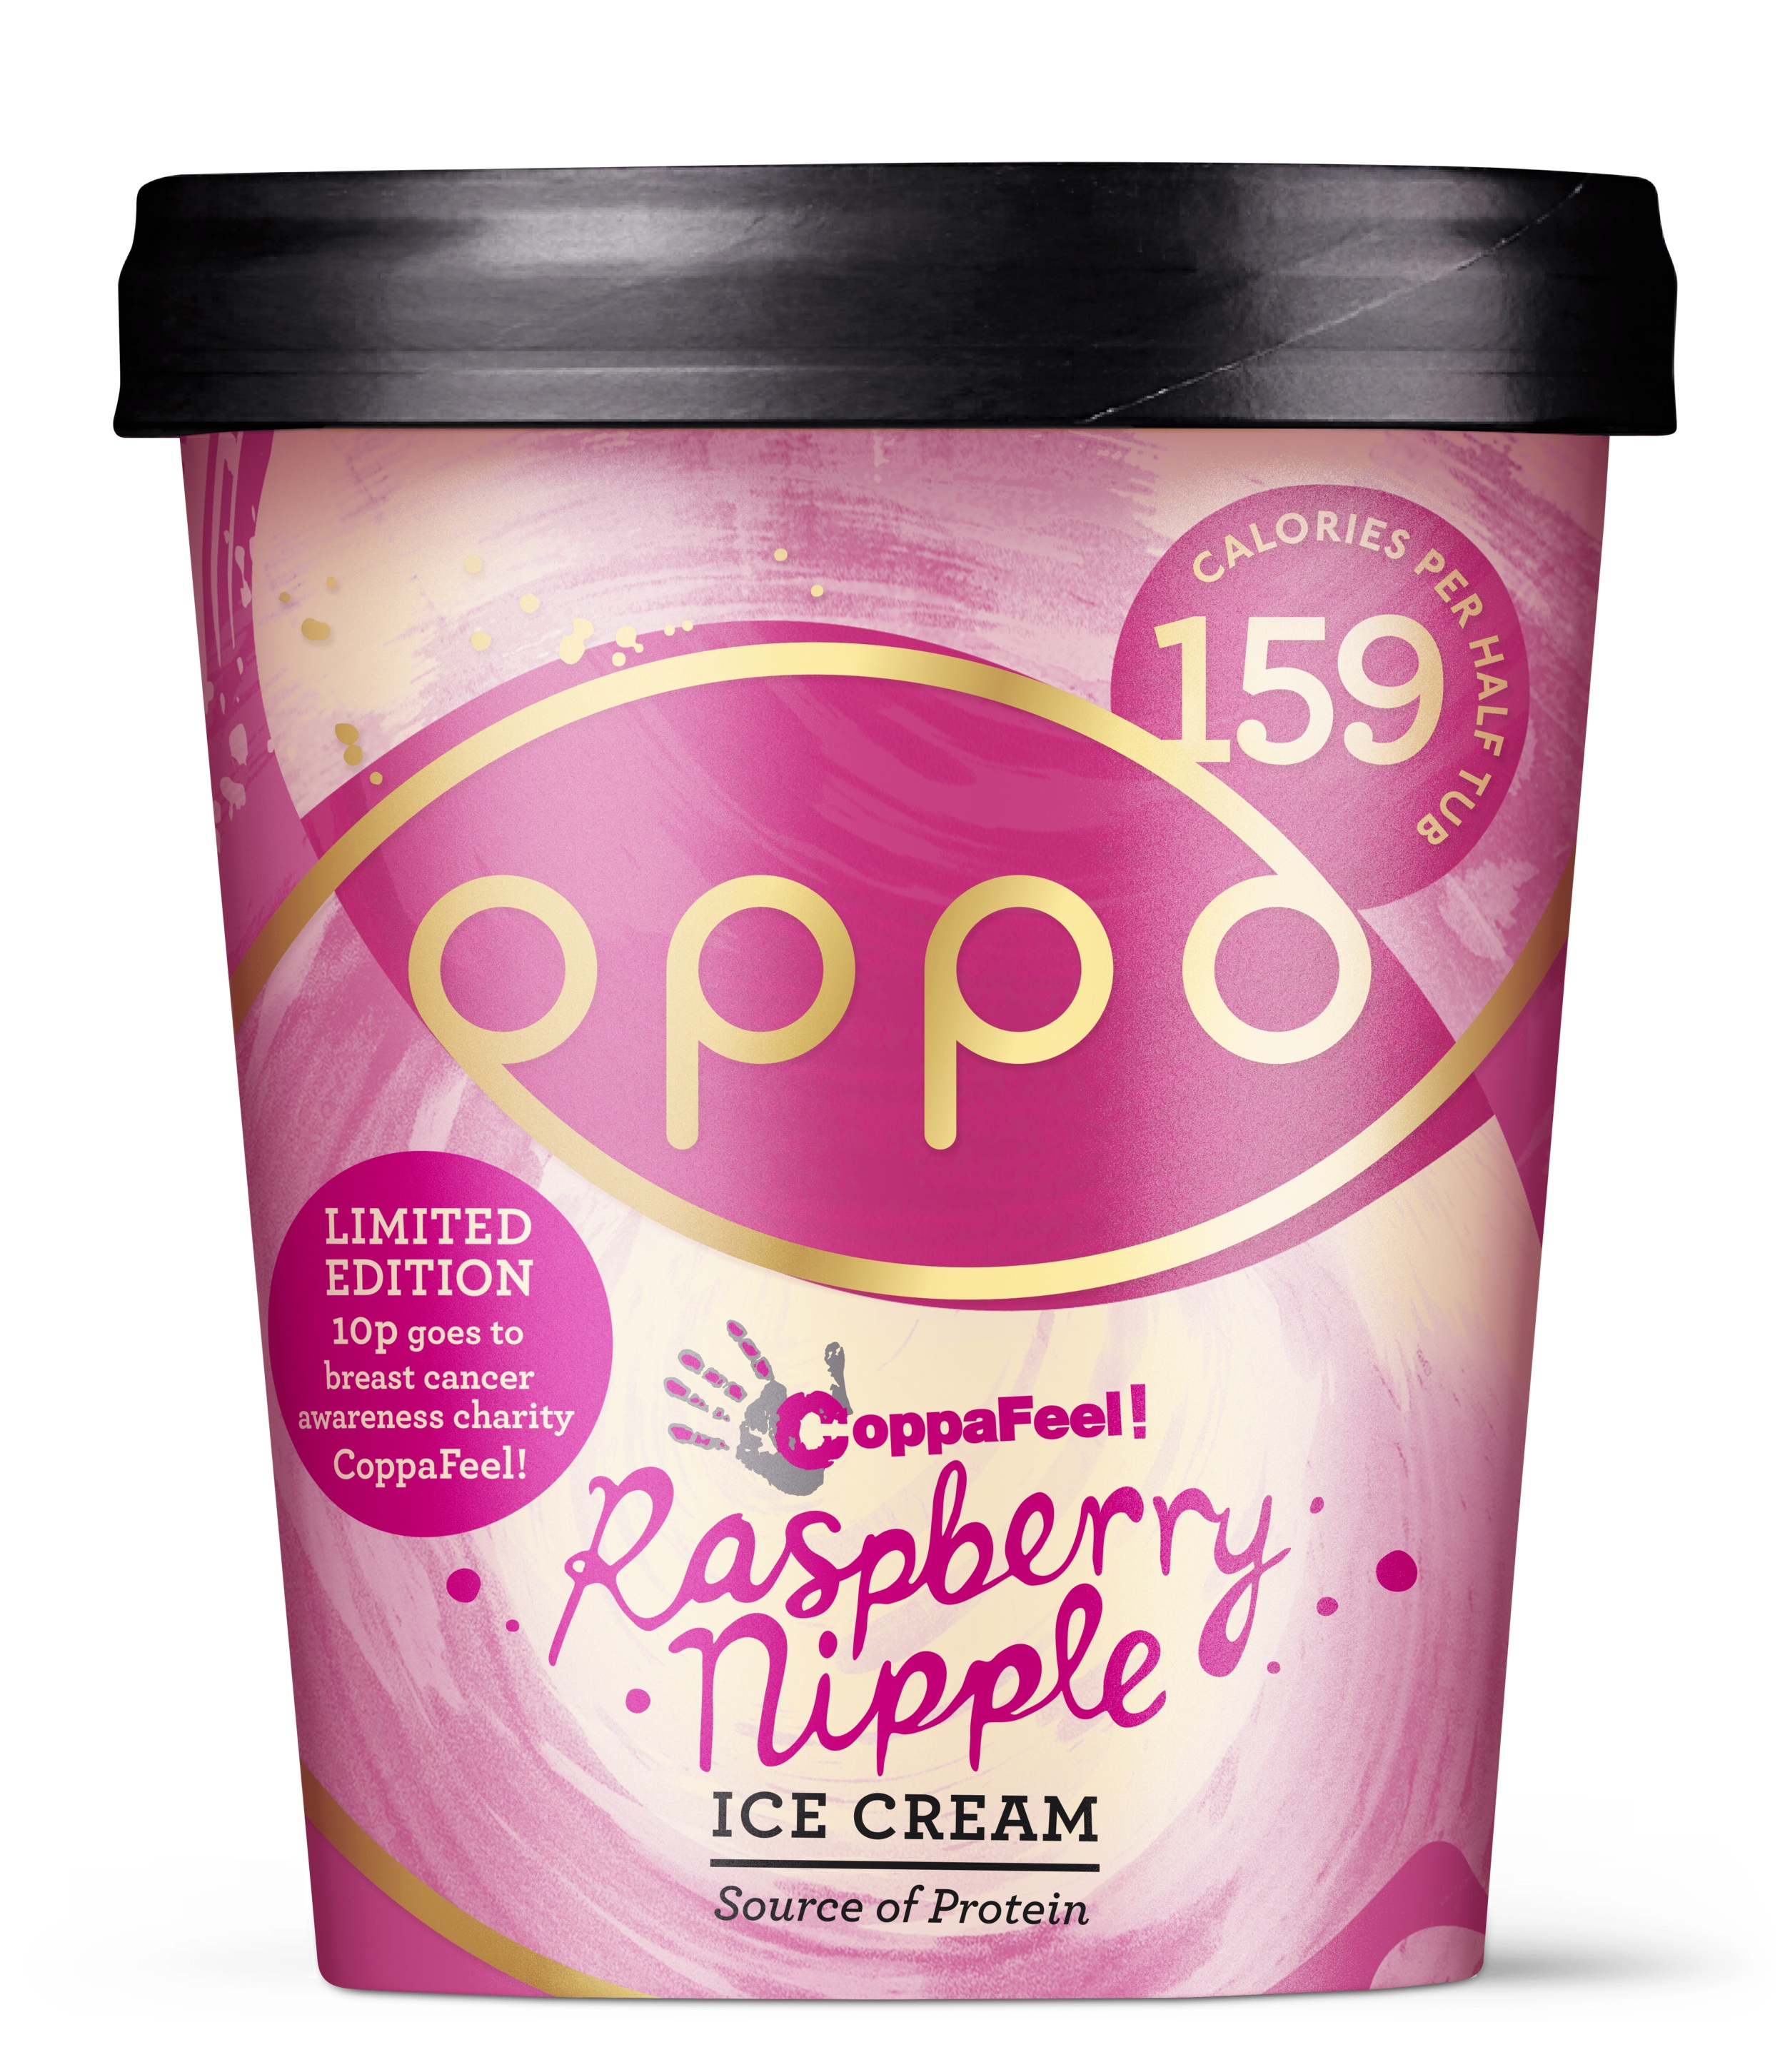 Oppo+475ml+Raspberry+Nipple+%28wecompress.com%29.jpg